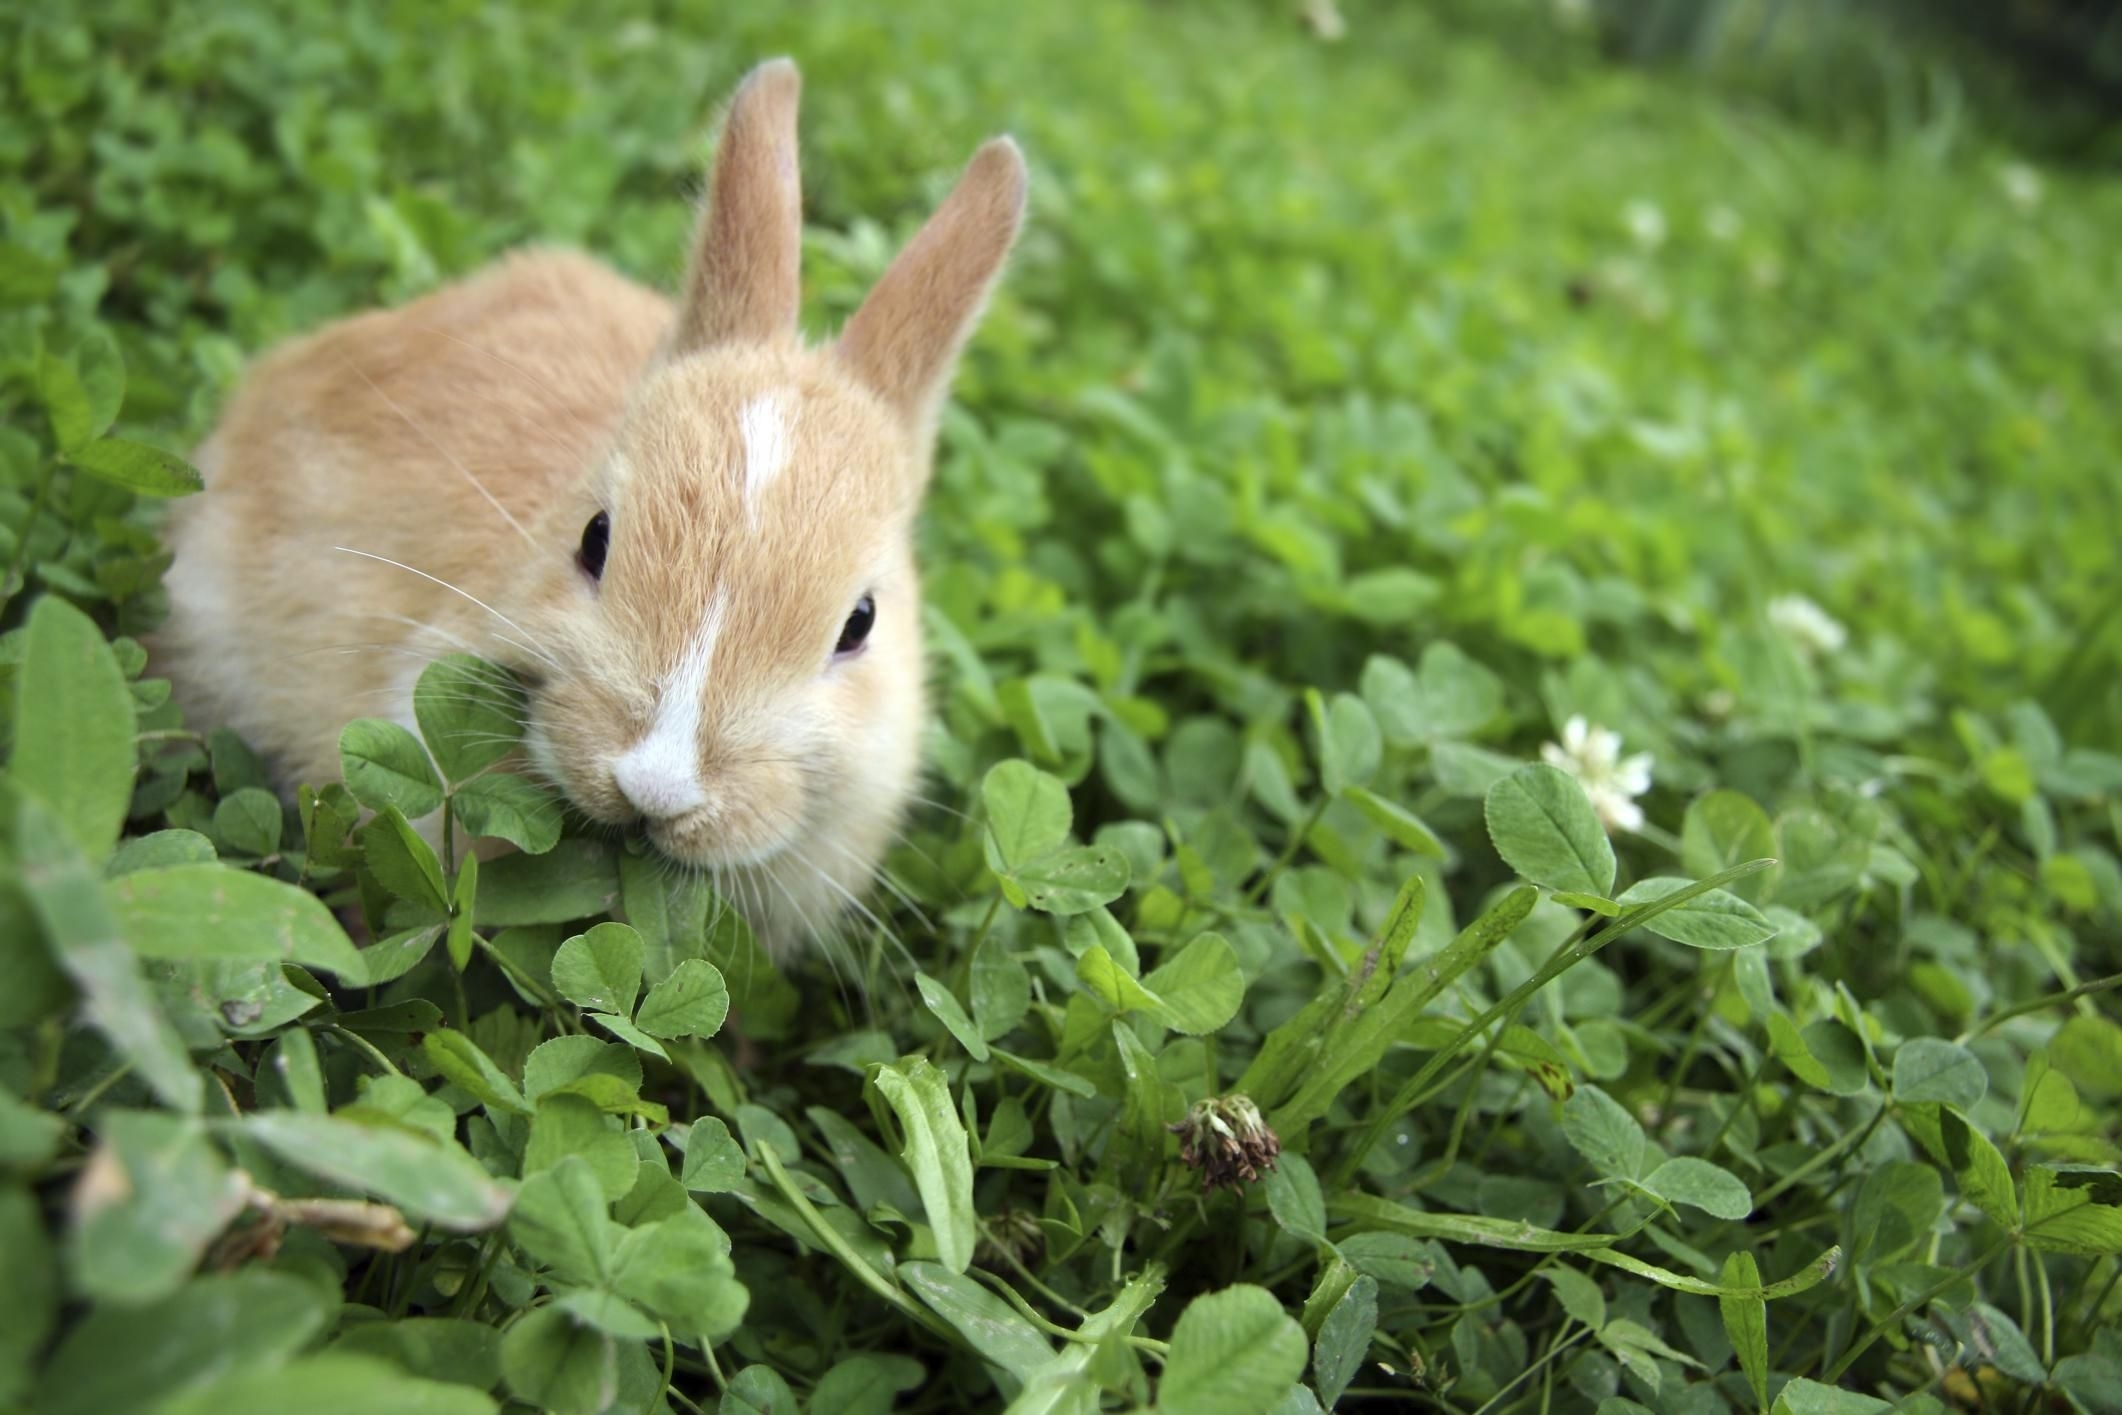 Garden Rabbit Control And Deterrent Tips regarding Garden Flower Dangerous To Rabbits